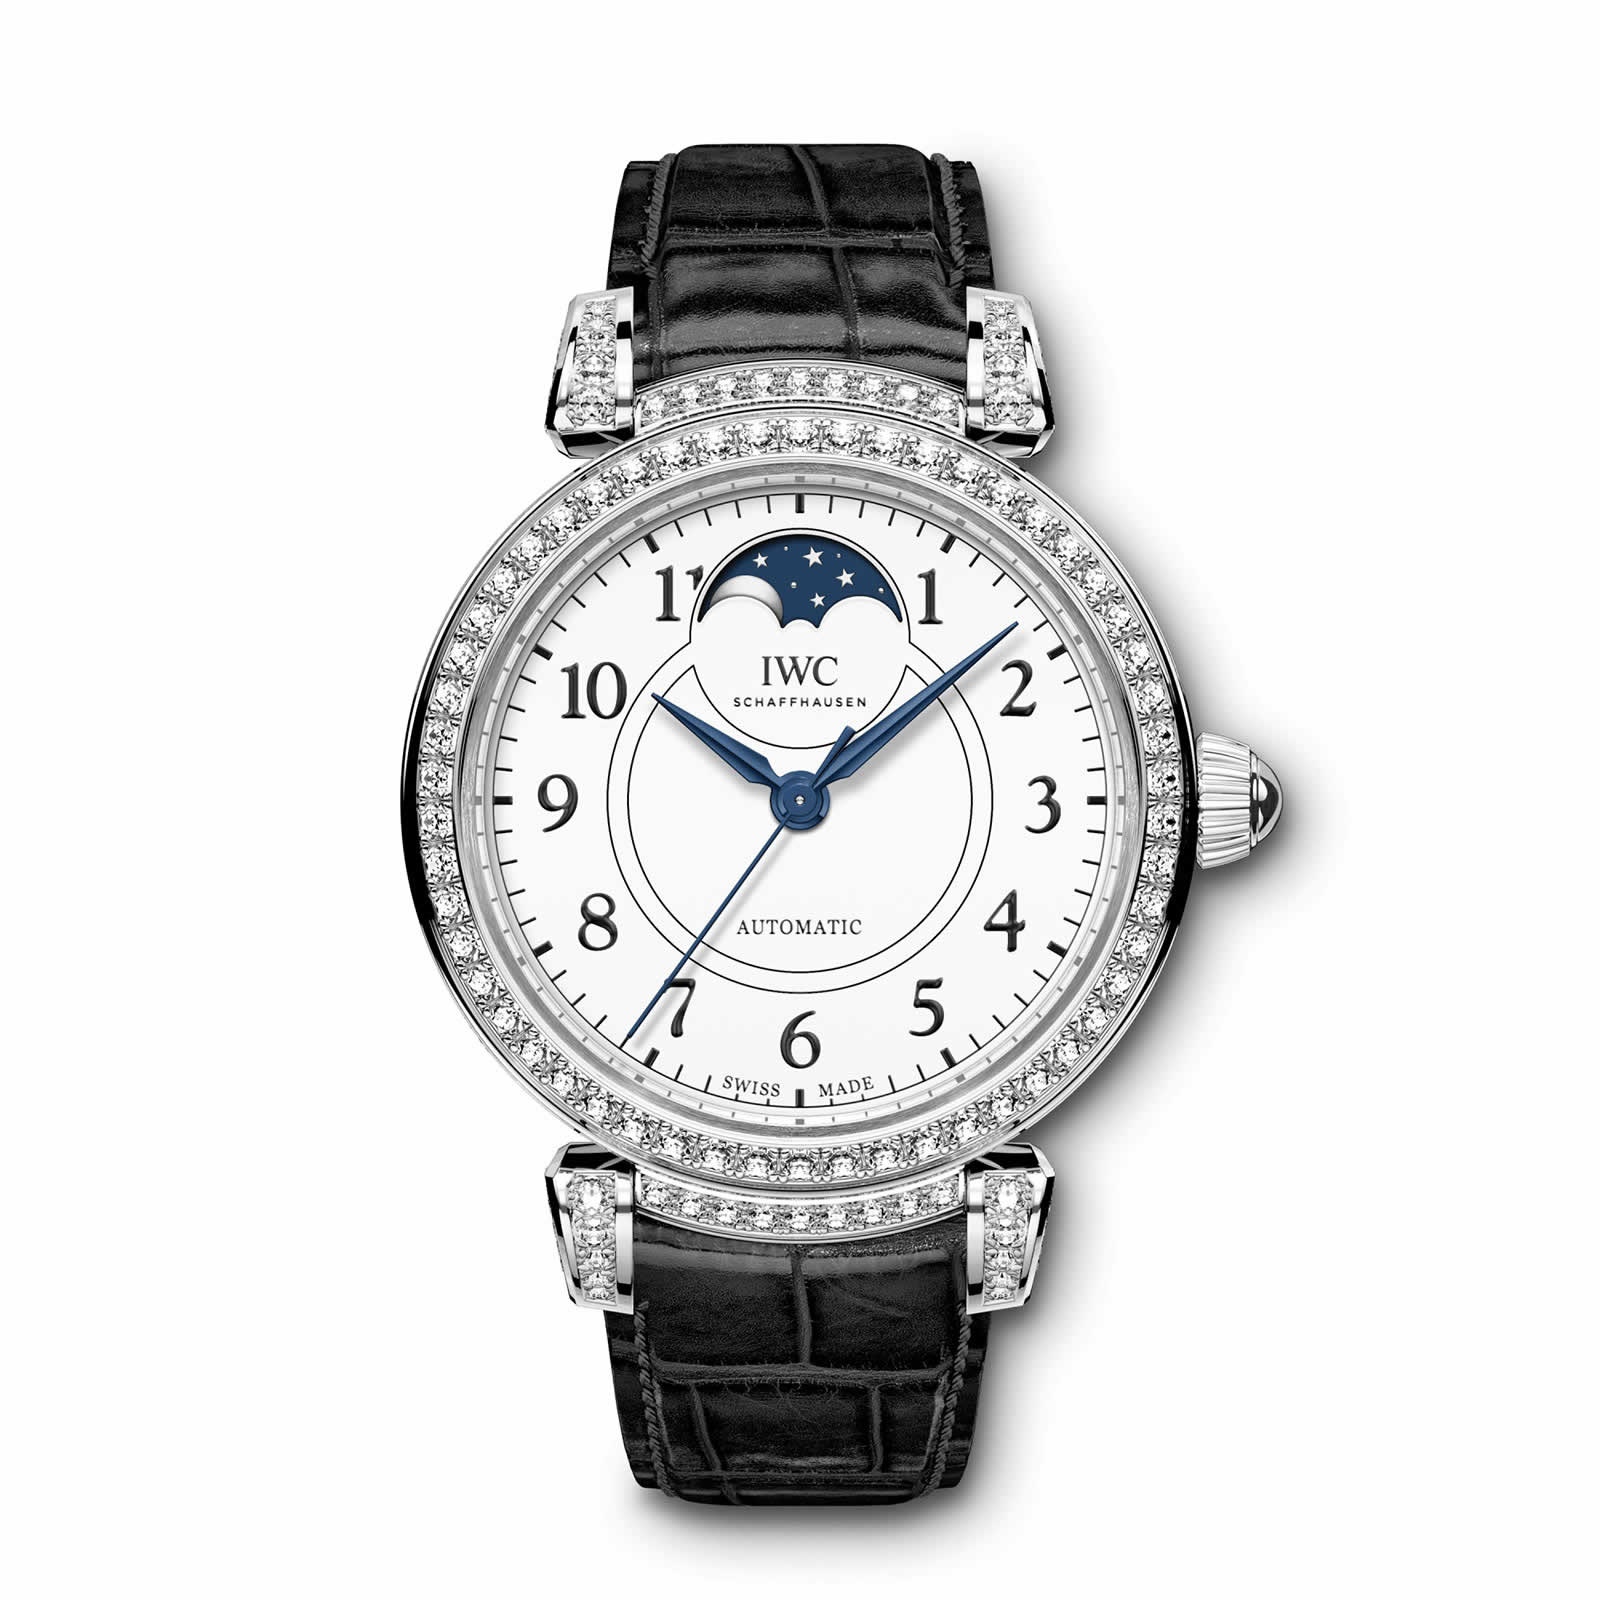 iwc-Da-Vinci-Automatic-Moon-Phase-36-Edition-150-Years-White-Gold.jpg